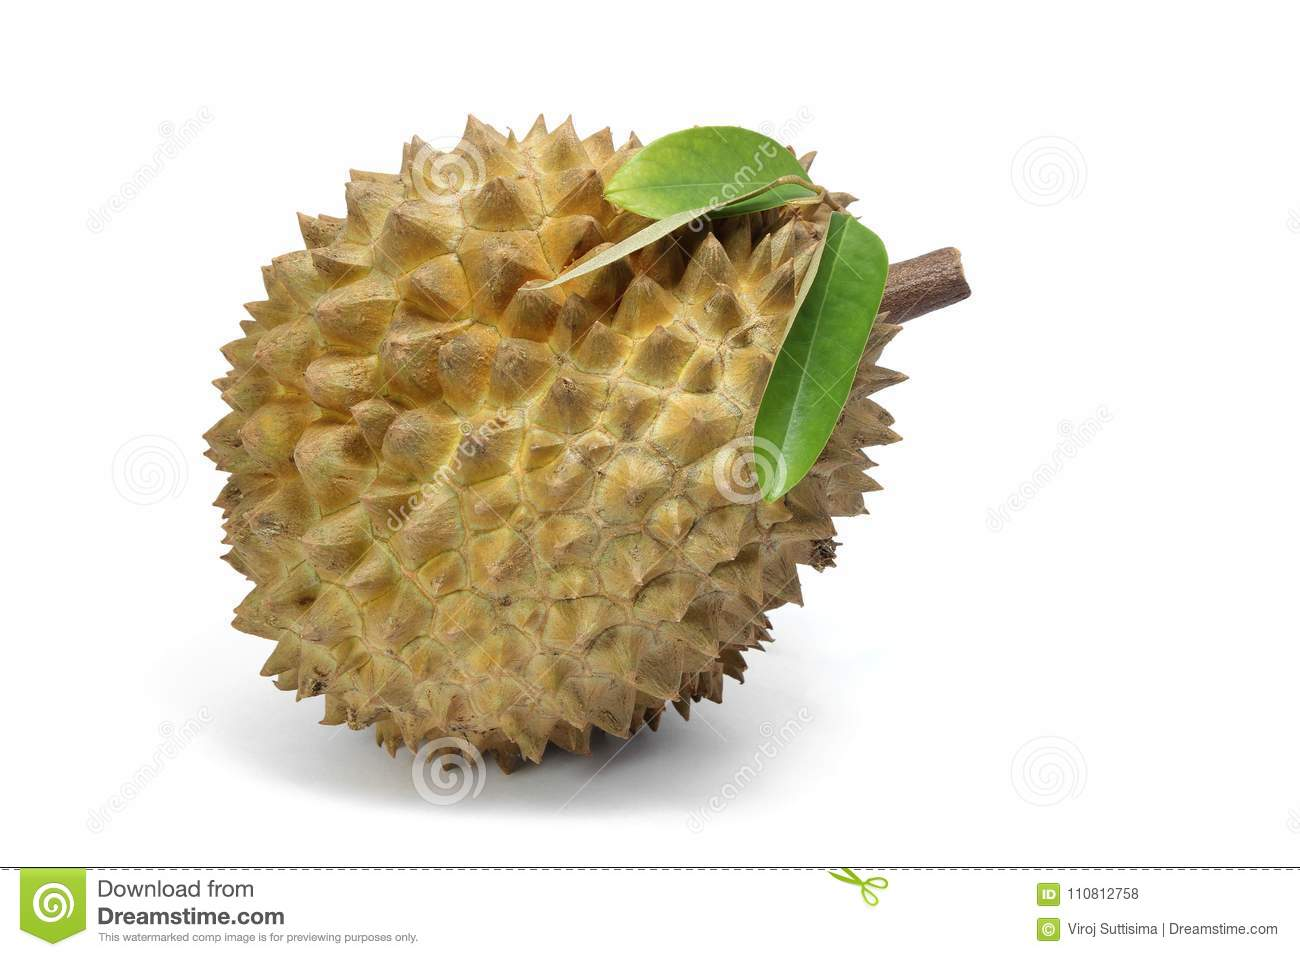 Durian fruits and durian leaf on white background, asia fruits.